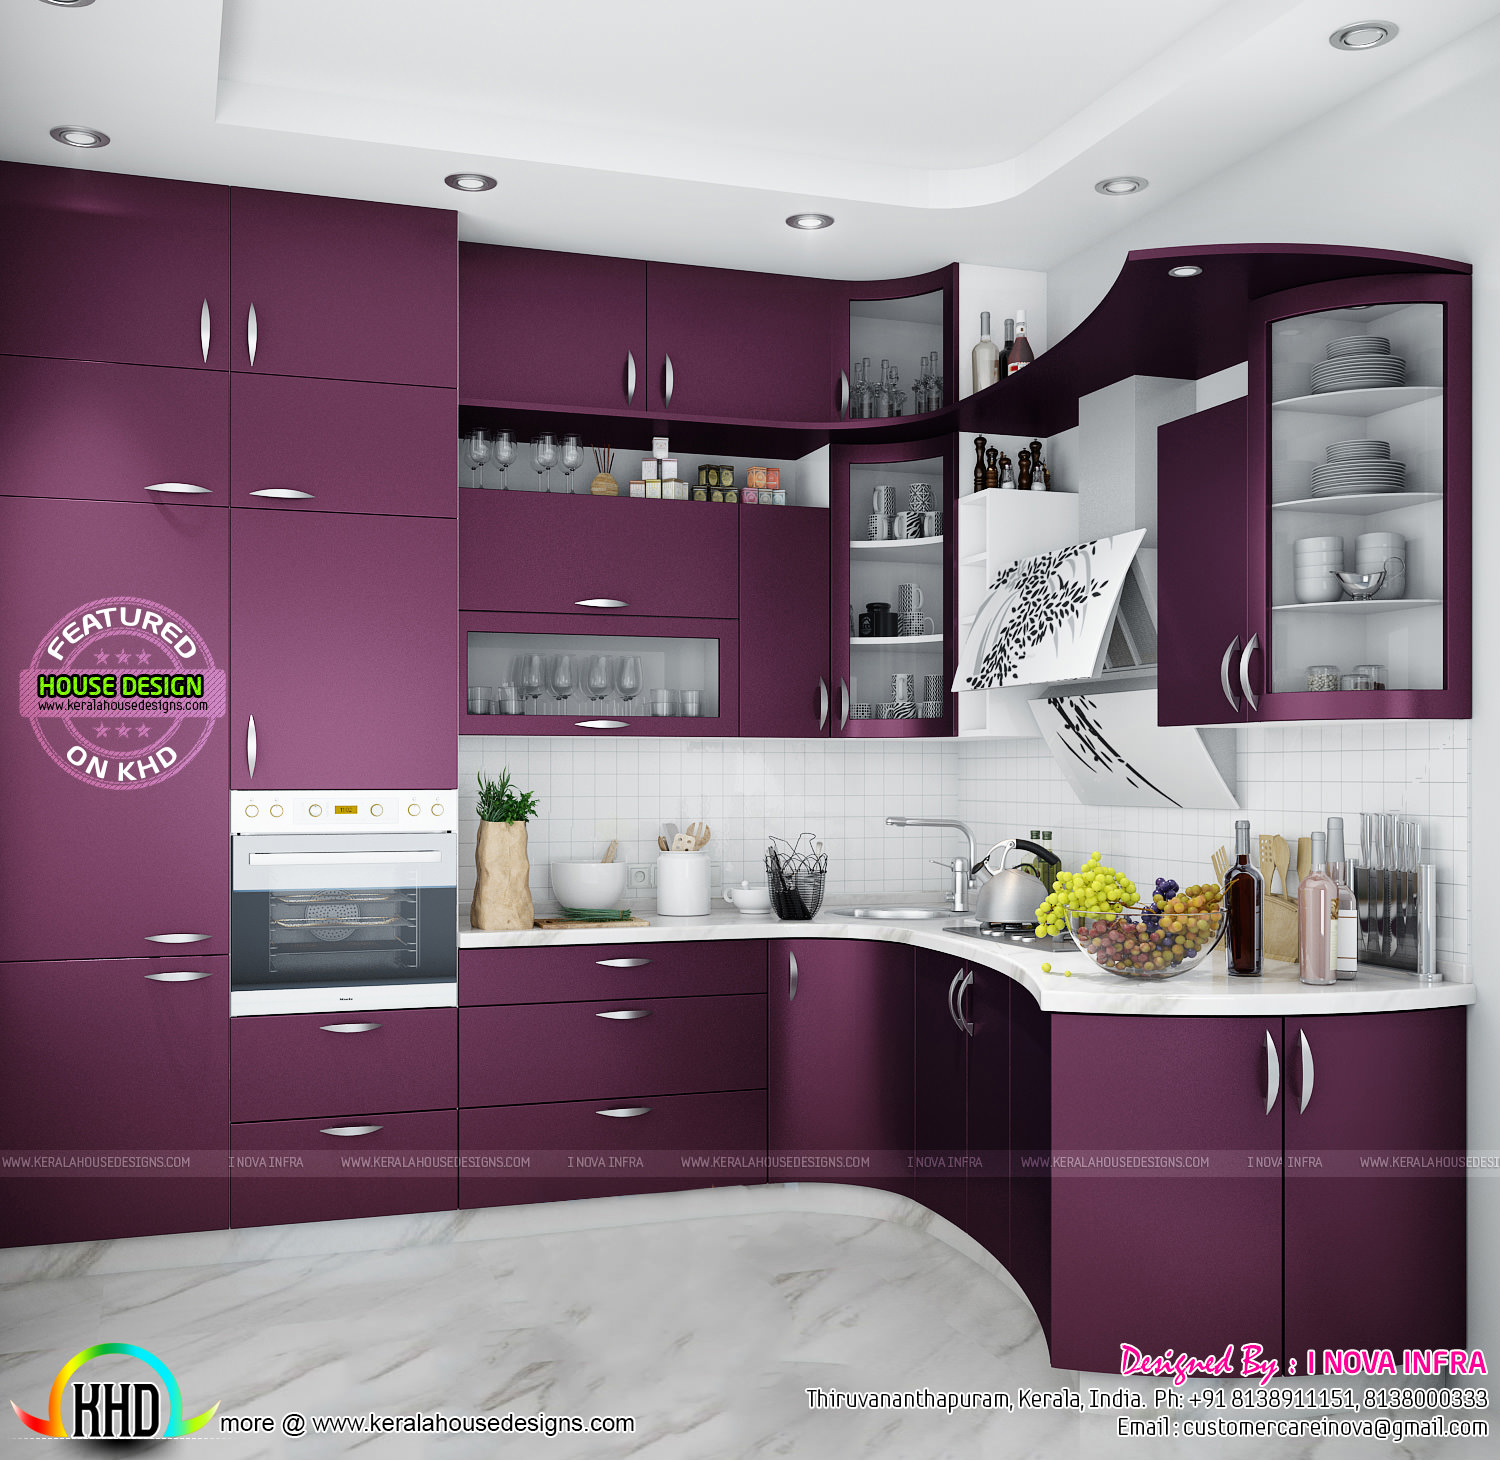 Modular kitchen kerala kerala home design and floor plans for Online modular kitchen designs